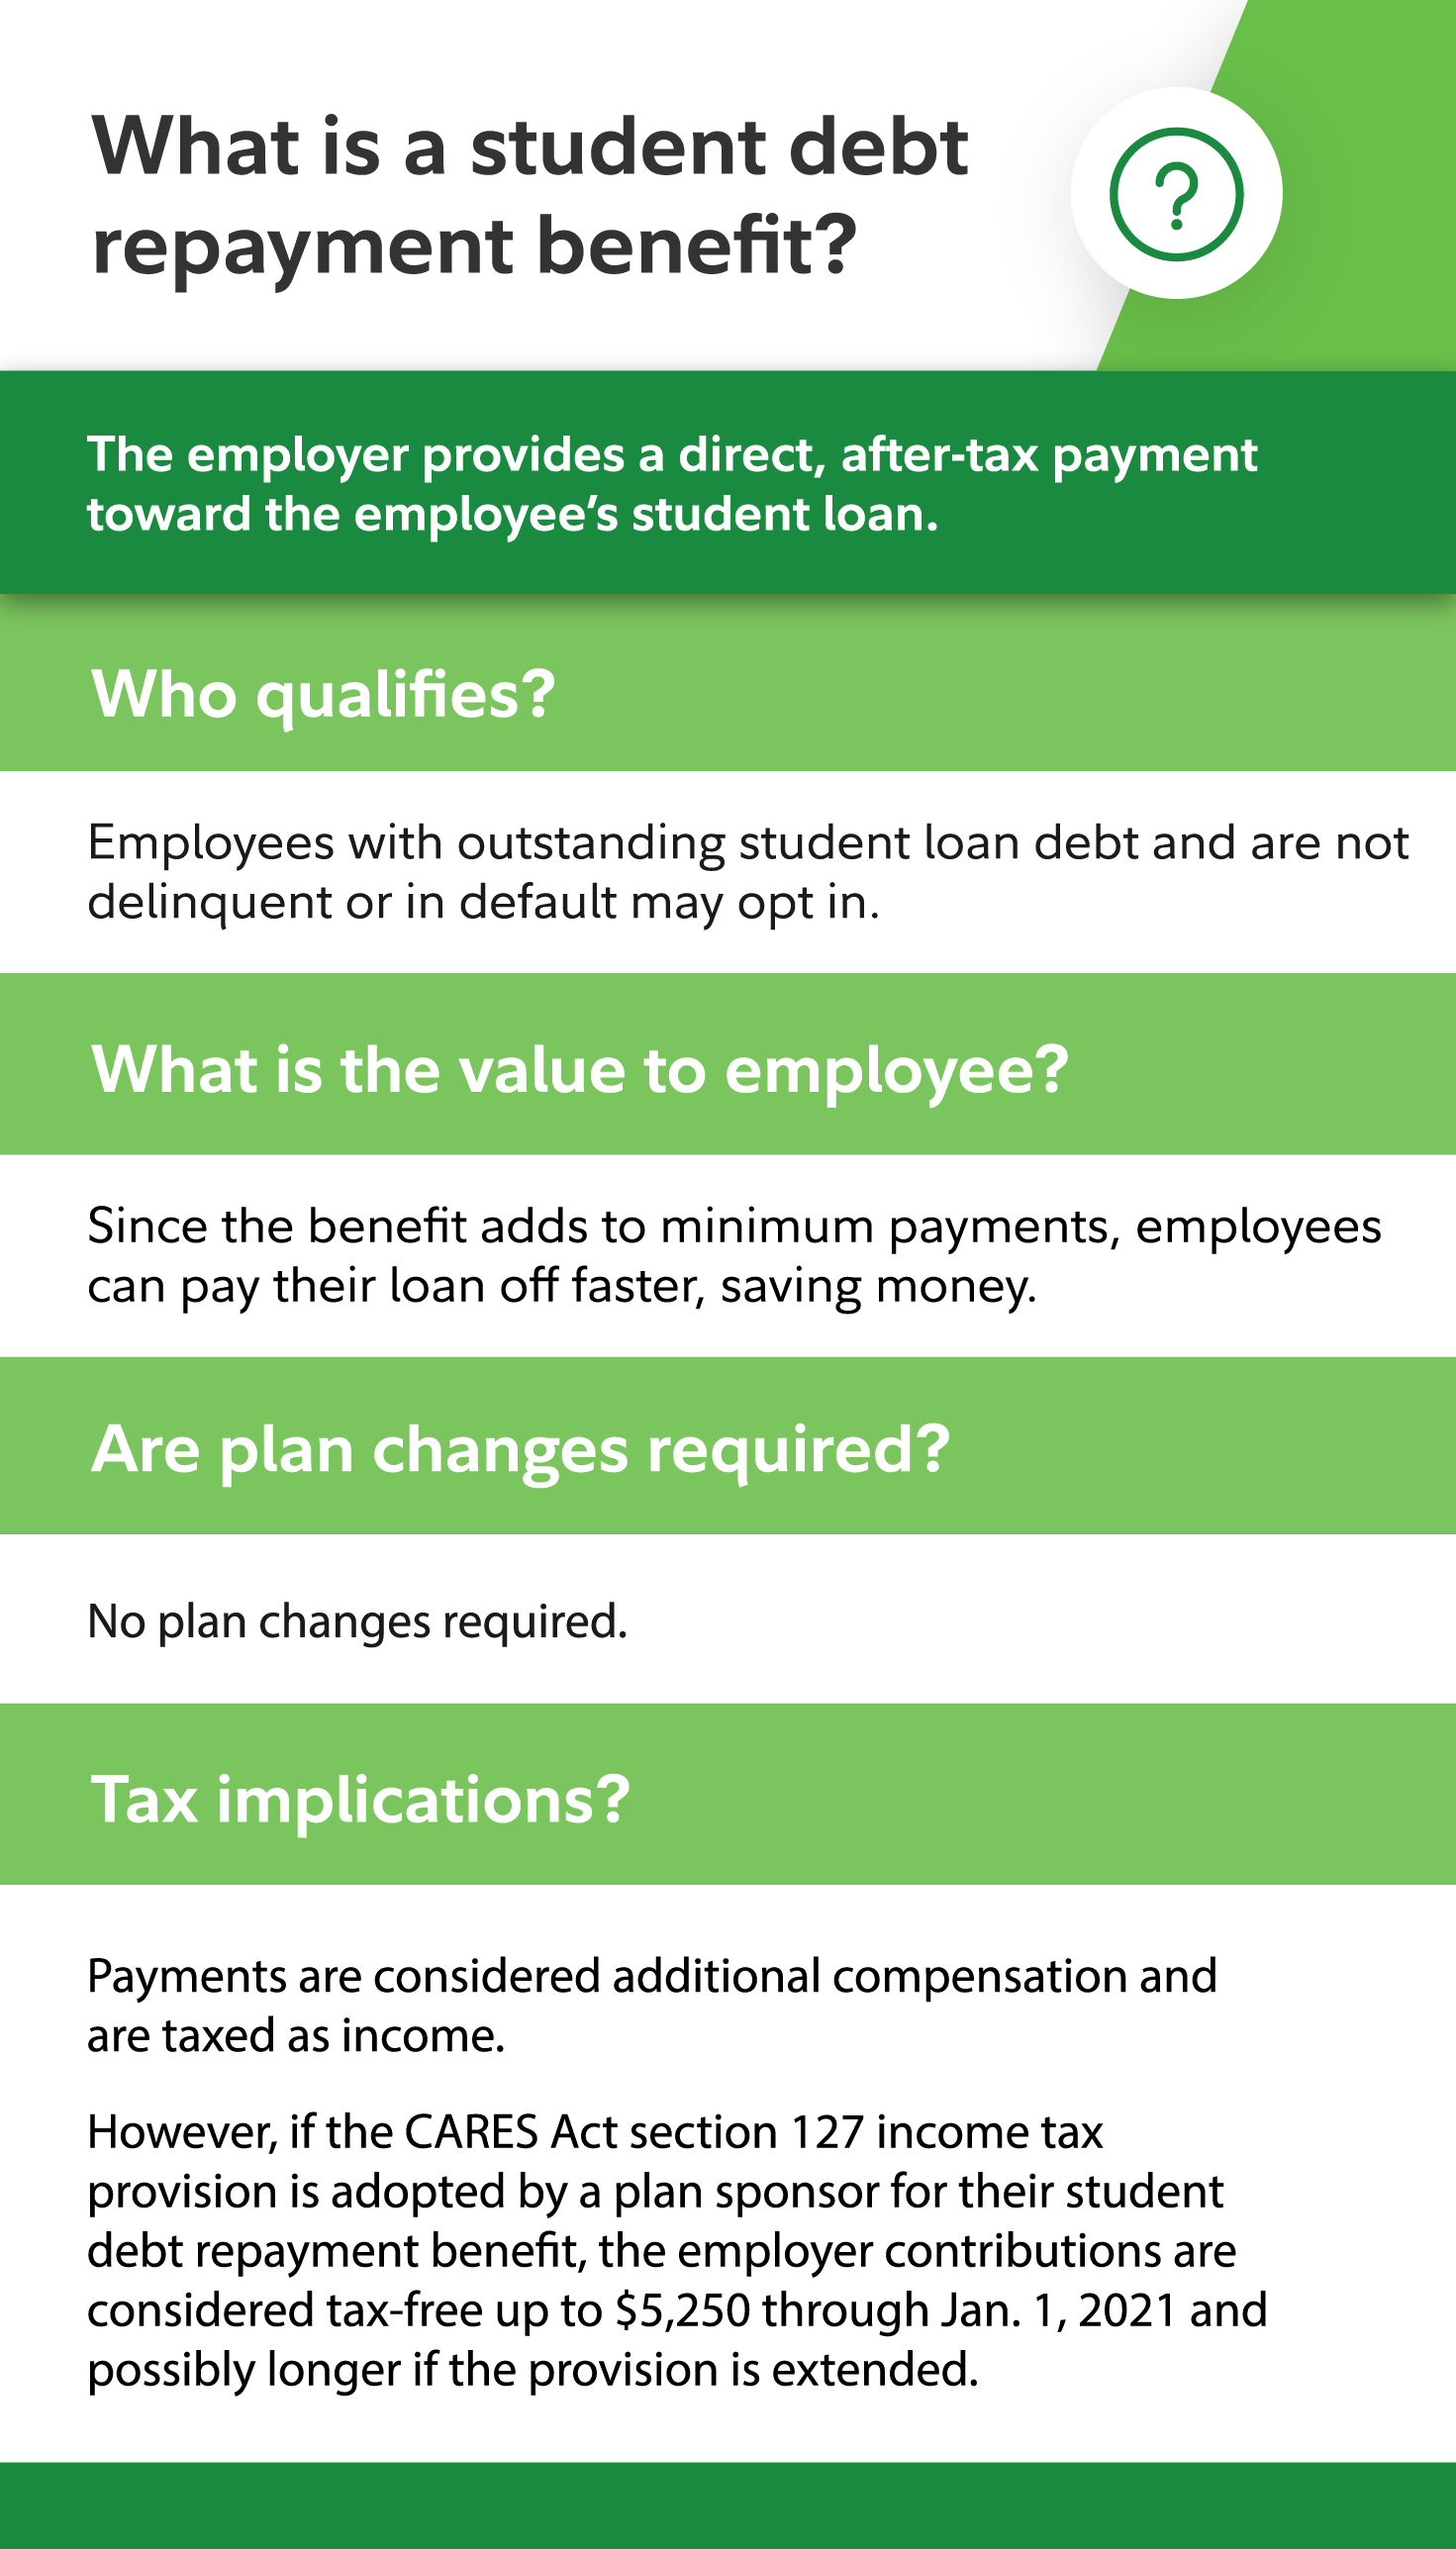 What is a student debt repayment benefit?